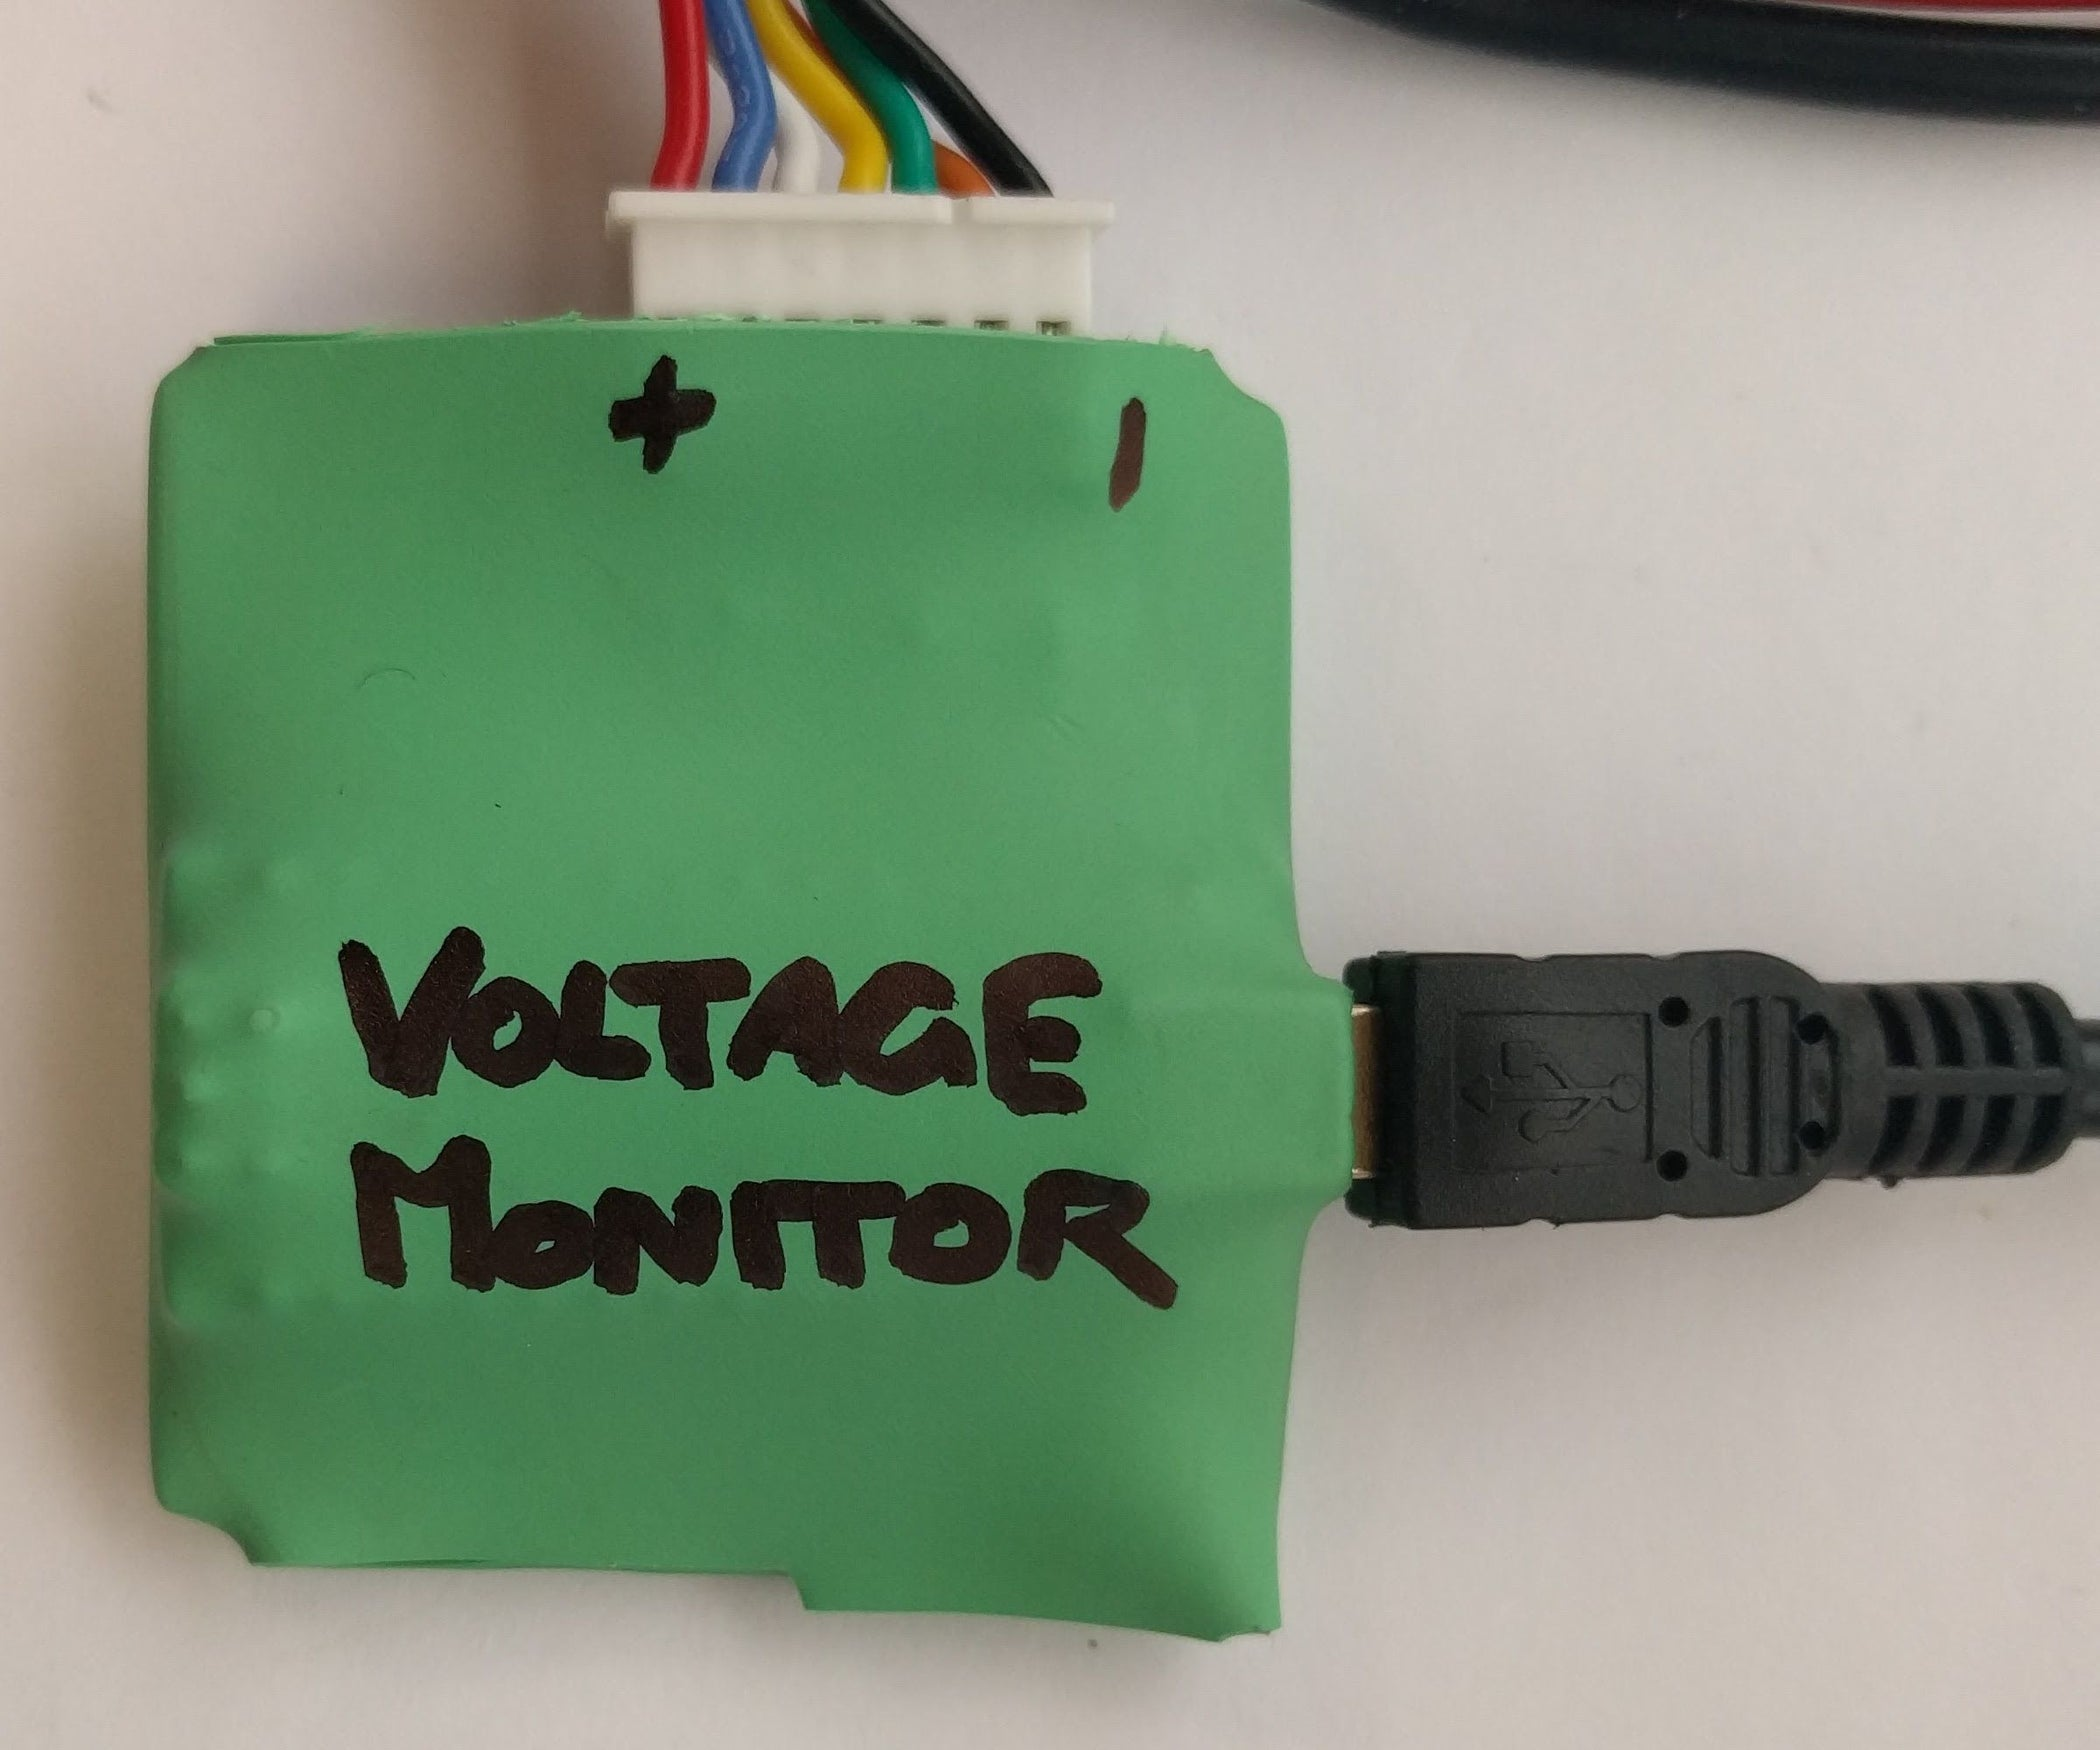 Monitoring individual cell voltages - Esk8 Electronics - Electric